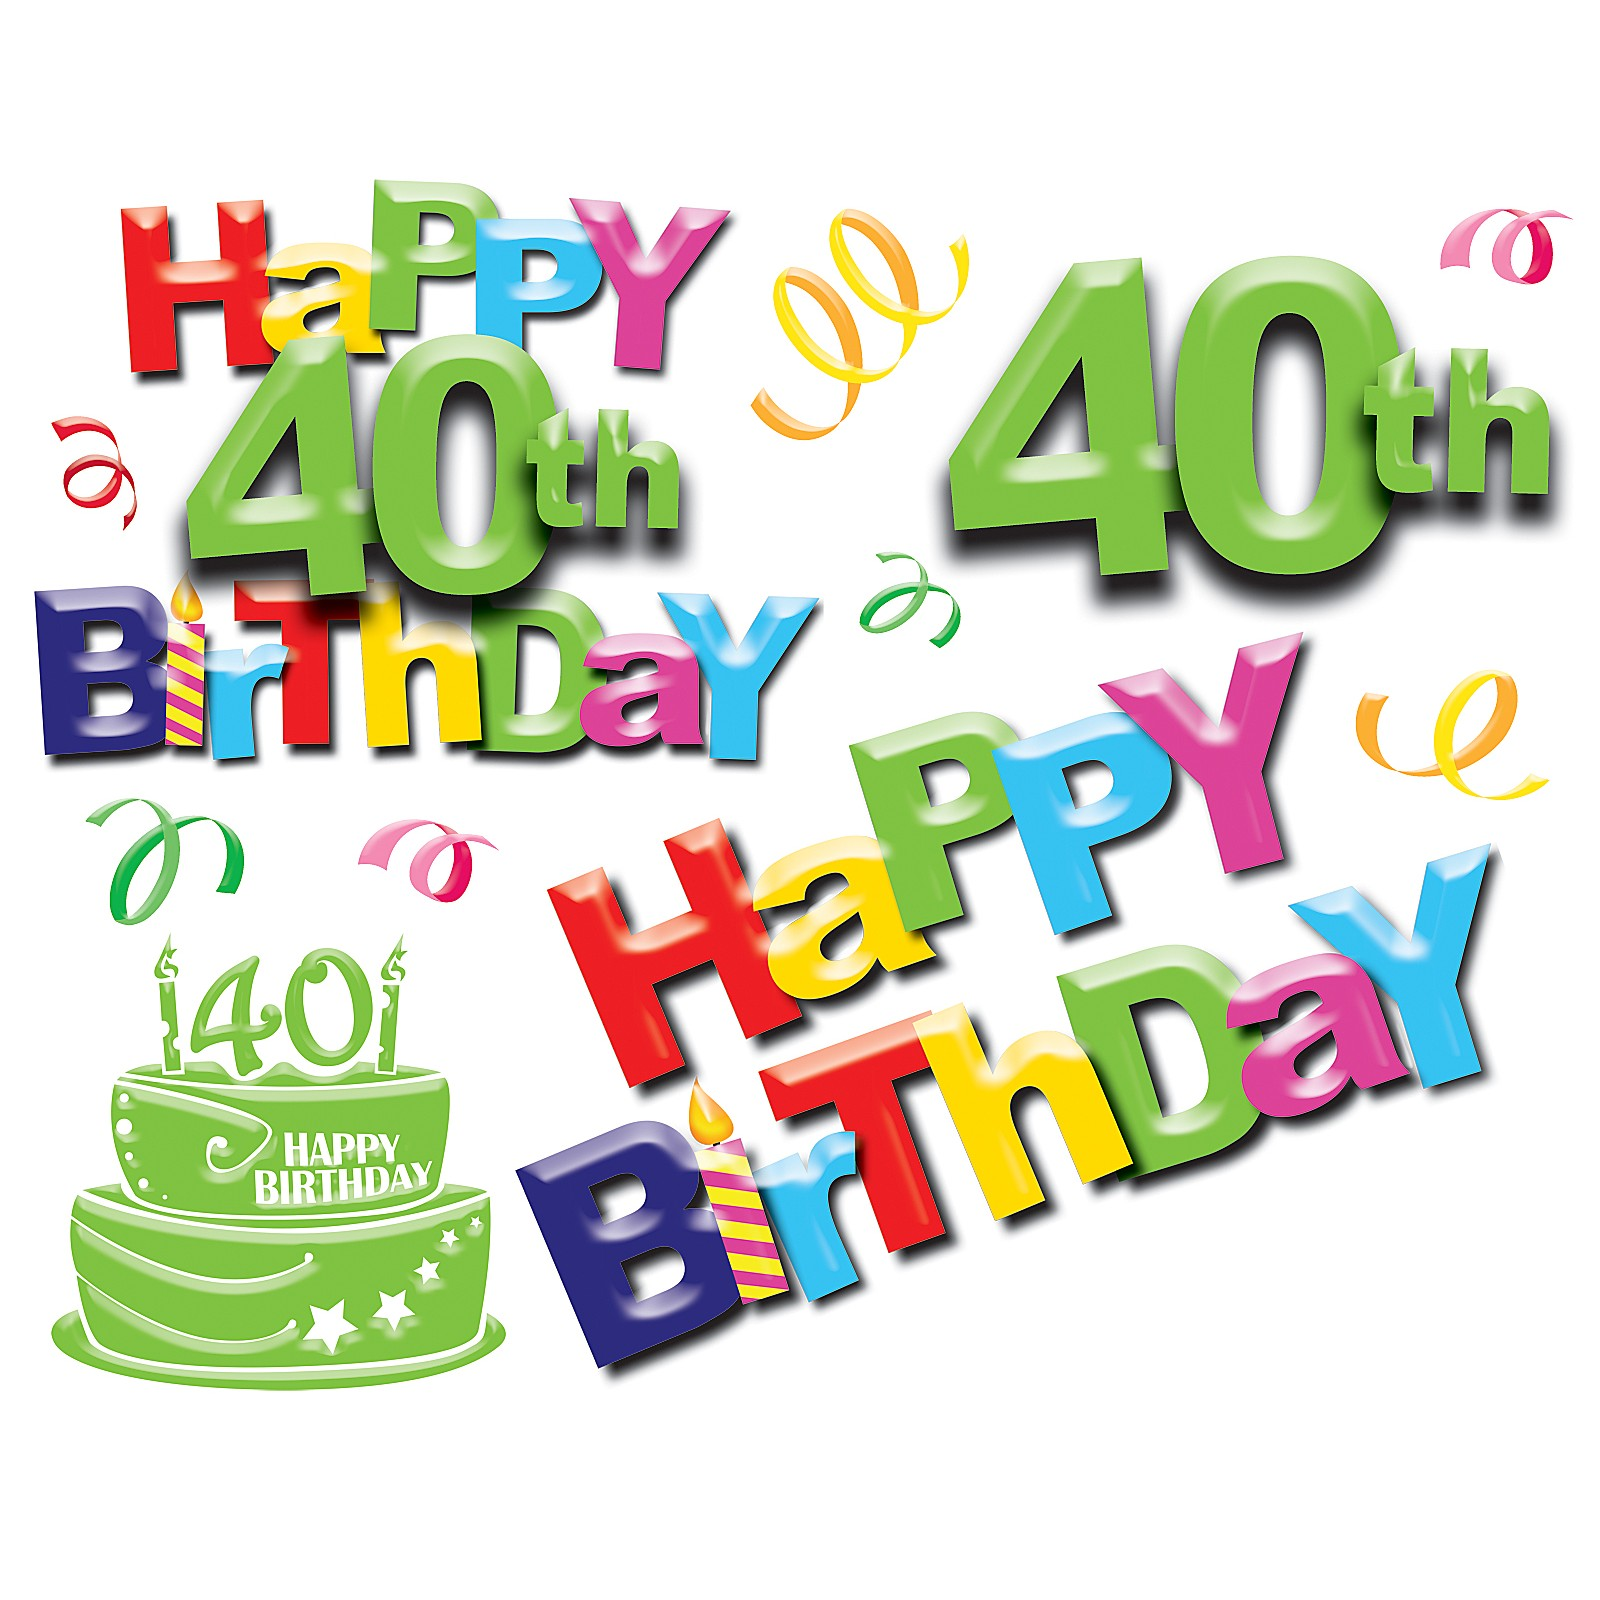 Free 40th Birthday Clipart, Download Free Clip Art, Free Clip Art on.